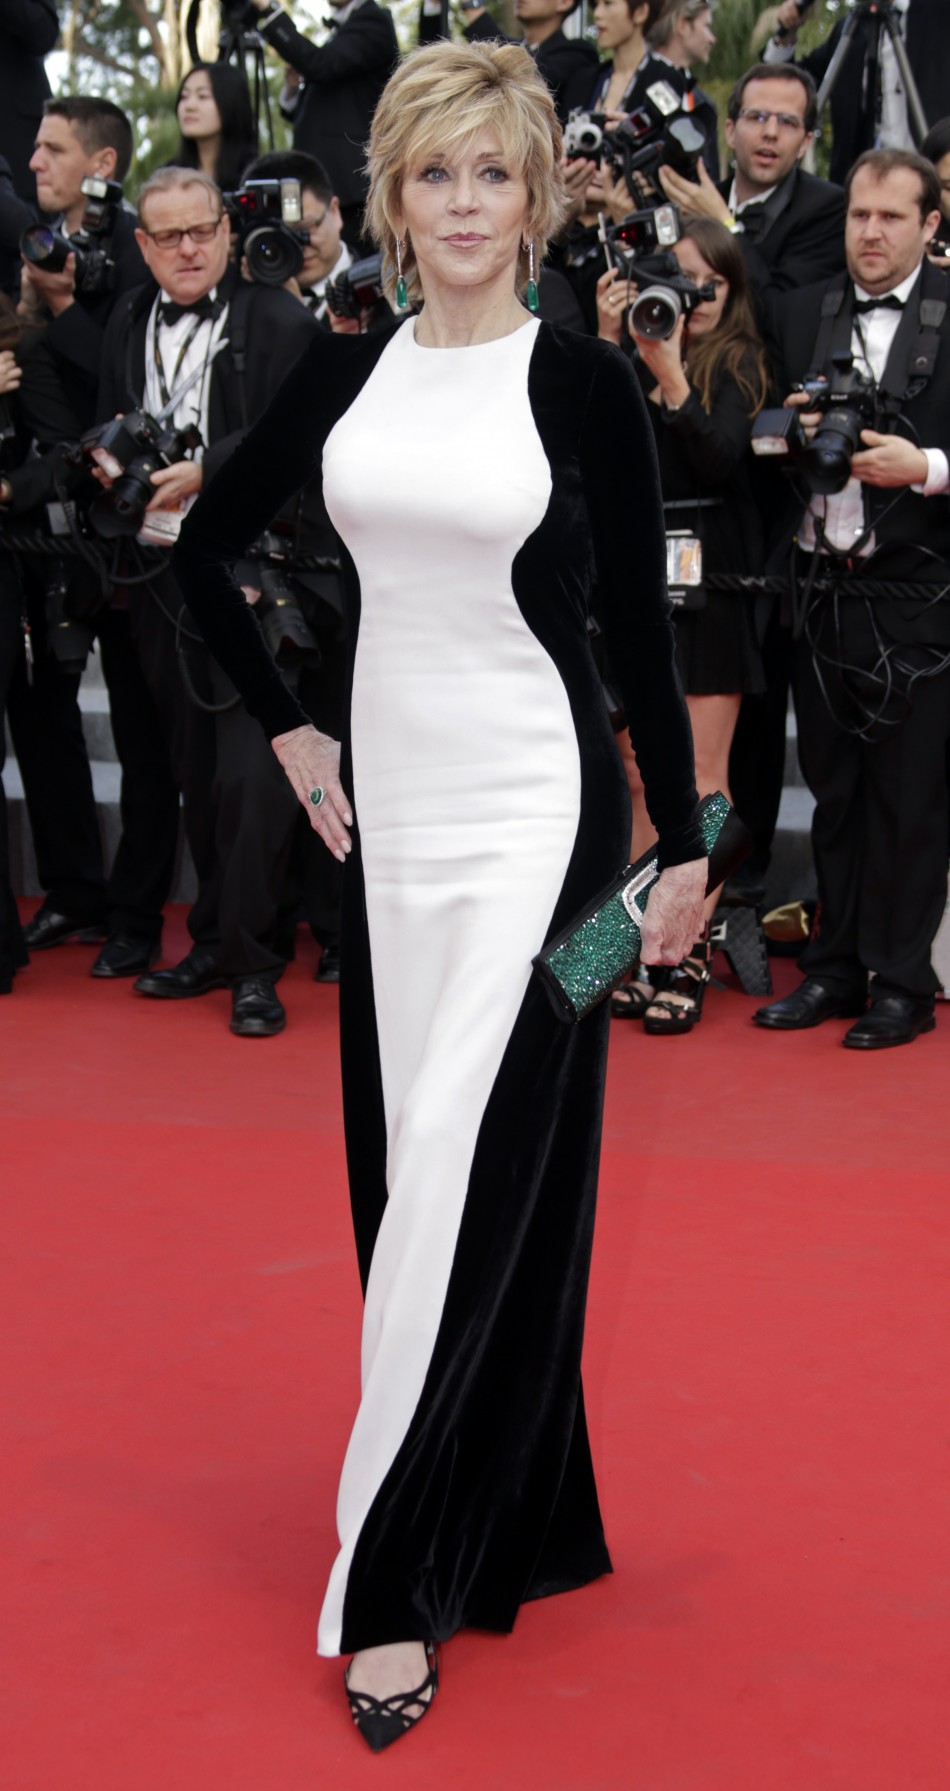 Actress Fonda arrives on the red carpet for the screeing of the film De rouille et dos at the 65th Cannes Film Festival